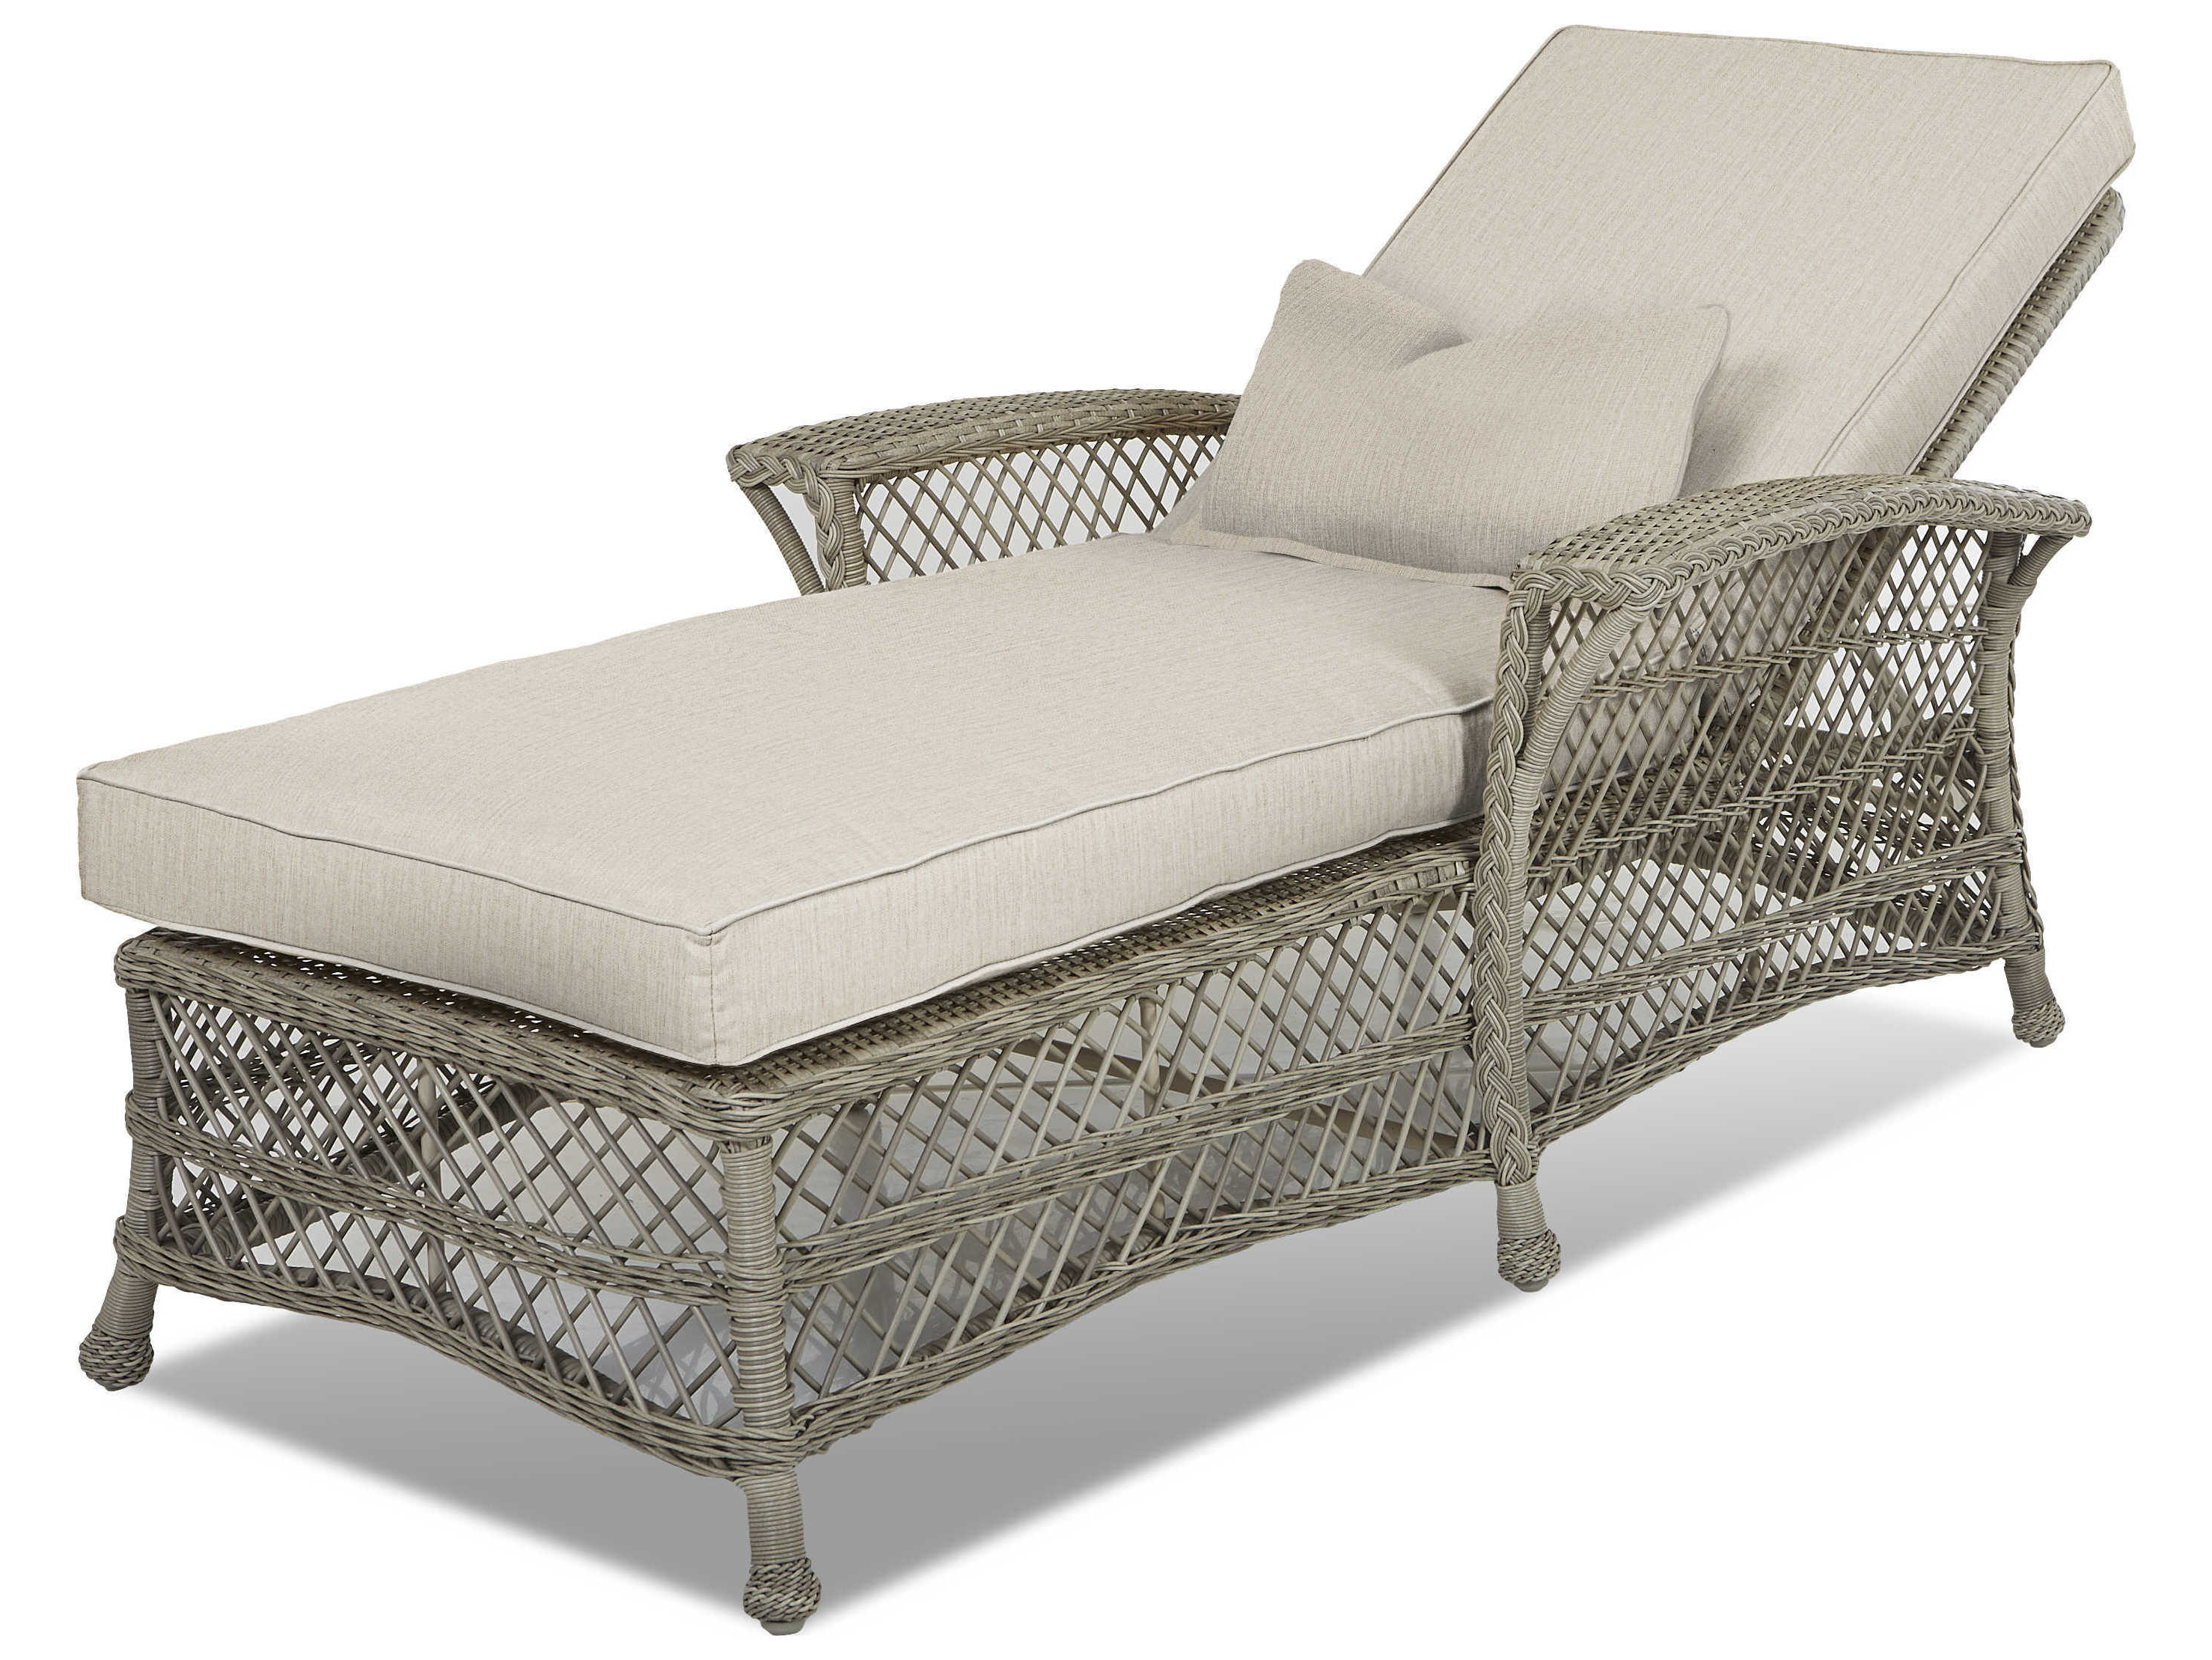 Outdoor Adjustable Rattan Wicker Chaise Pool Chairs With Cushions Regarding Most Current Klaussner Willow Wicker Cushion Chaise Lounge (Gallery 21 of 25)